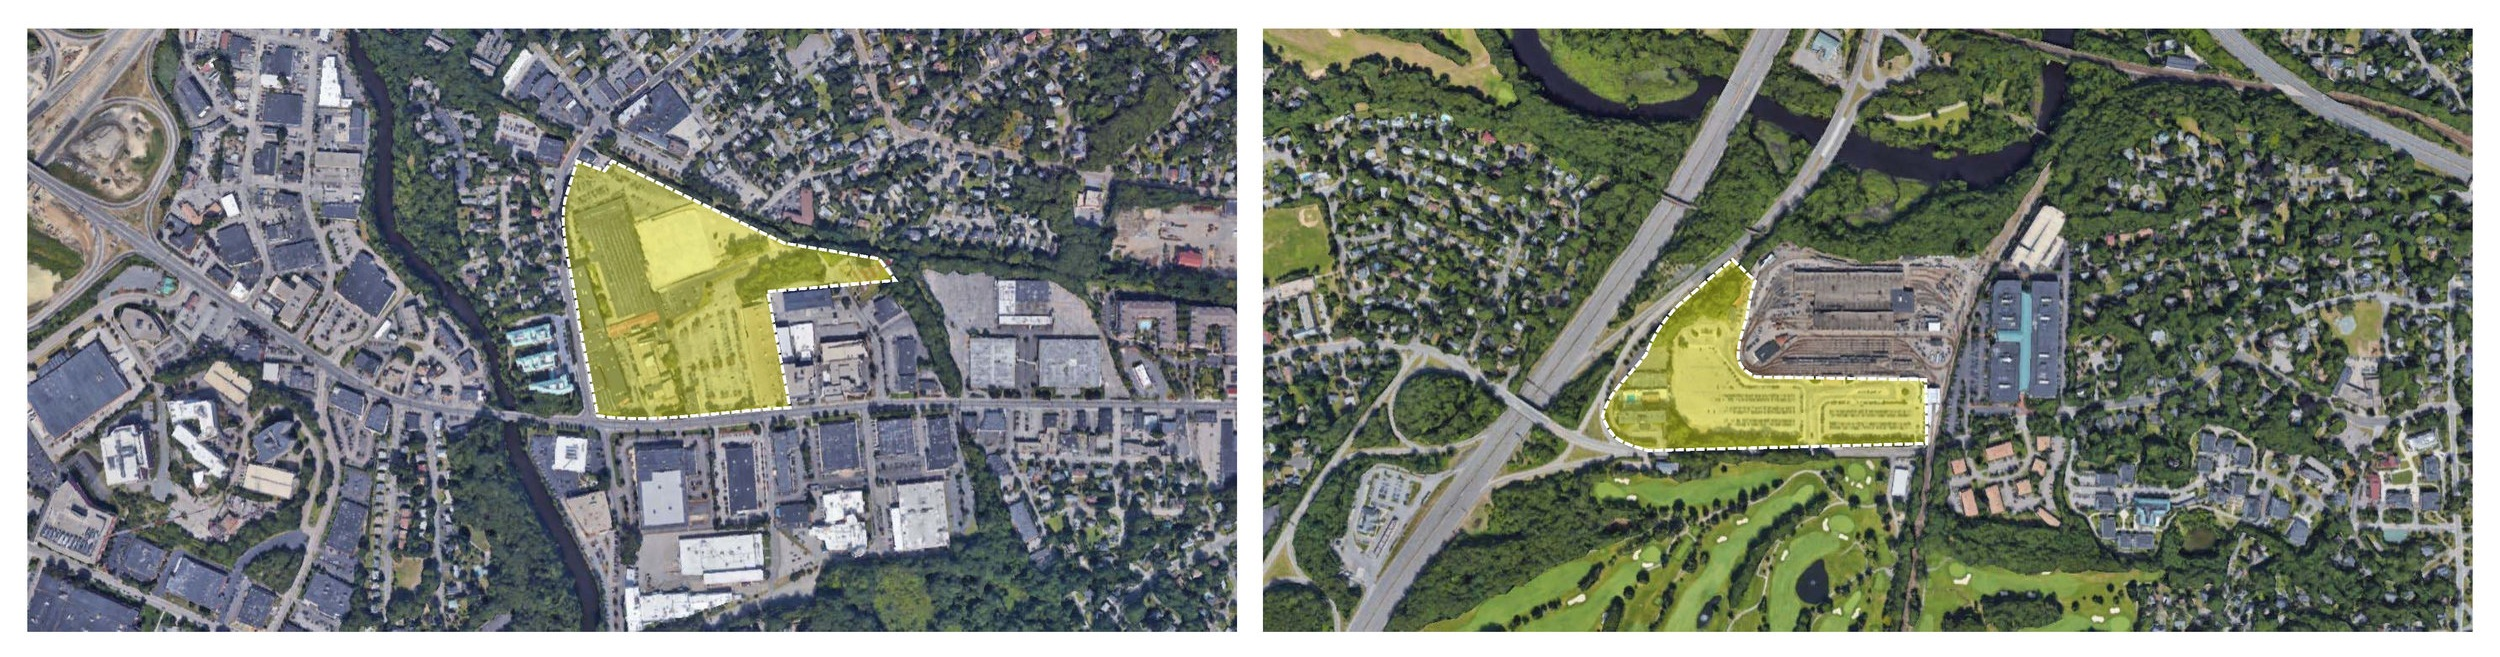 Northland Site along the Needham Street Corridor + Riverside Station Site adjacent to Route 128